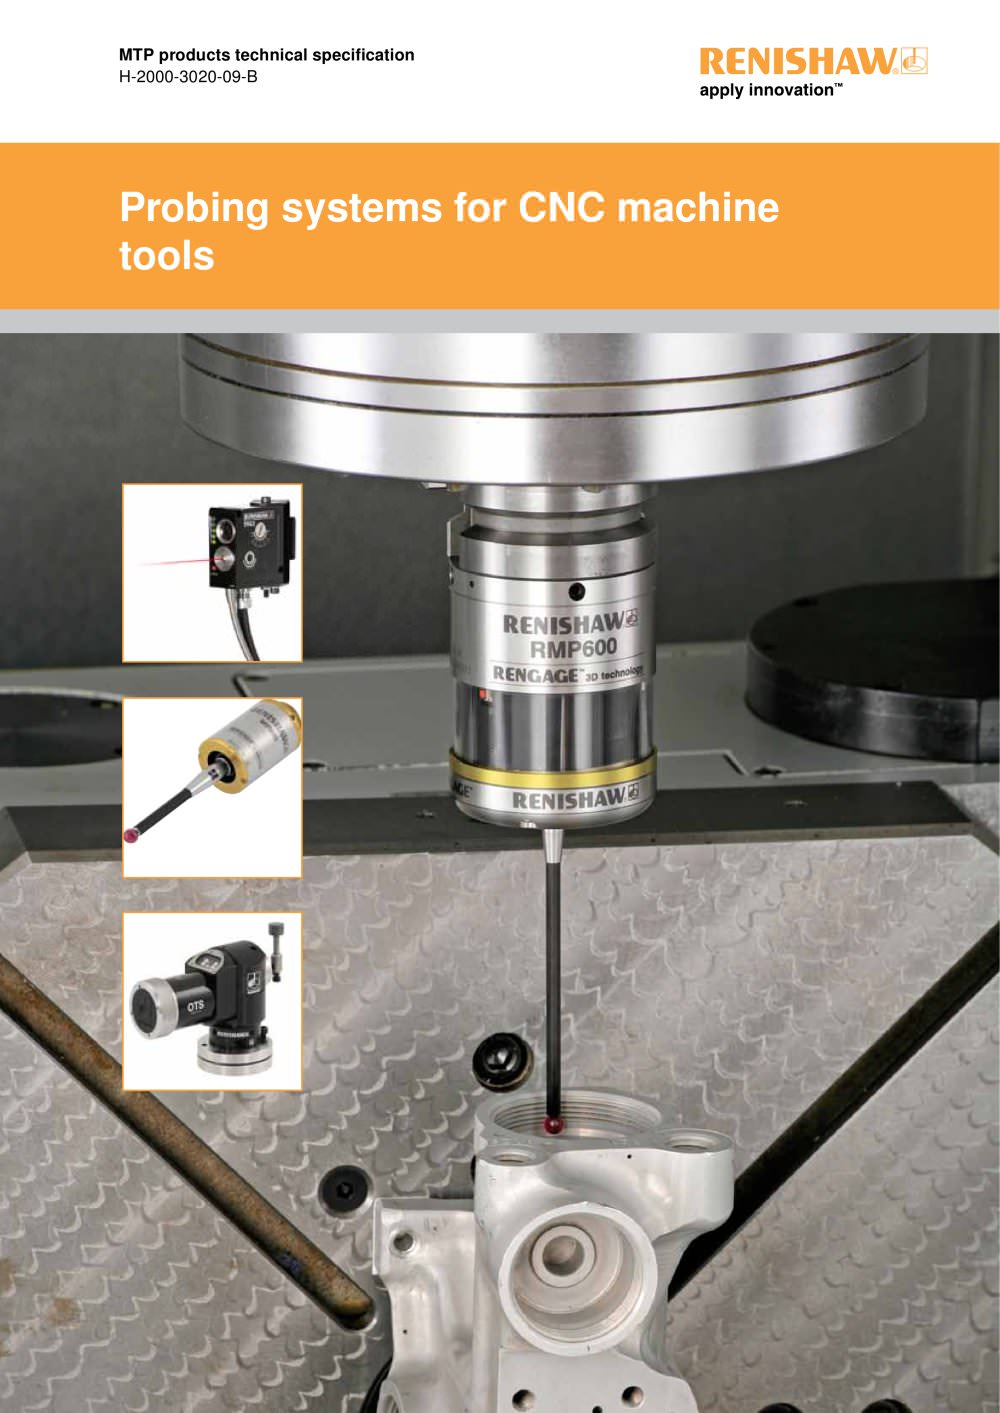 Probing systems for CNC machine tools technical - RENISHAW - PDF ...